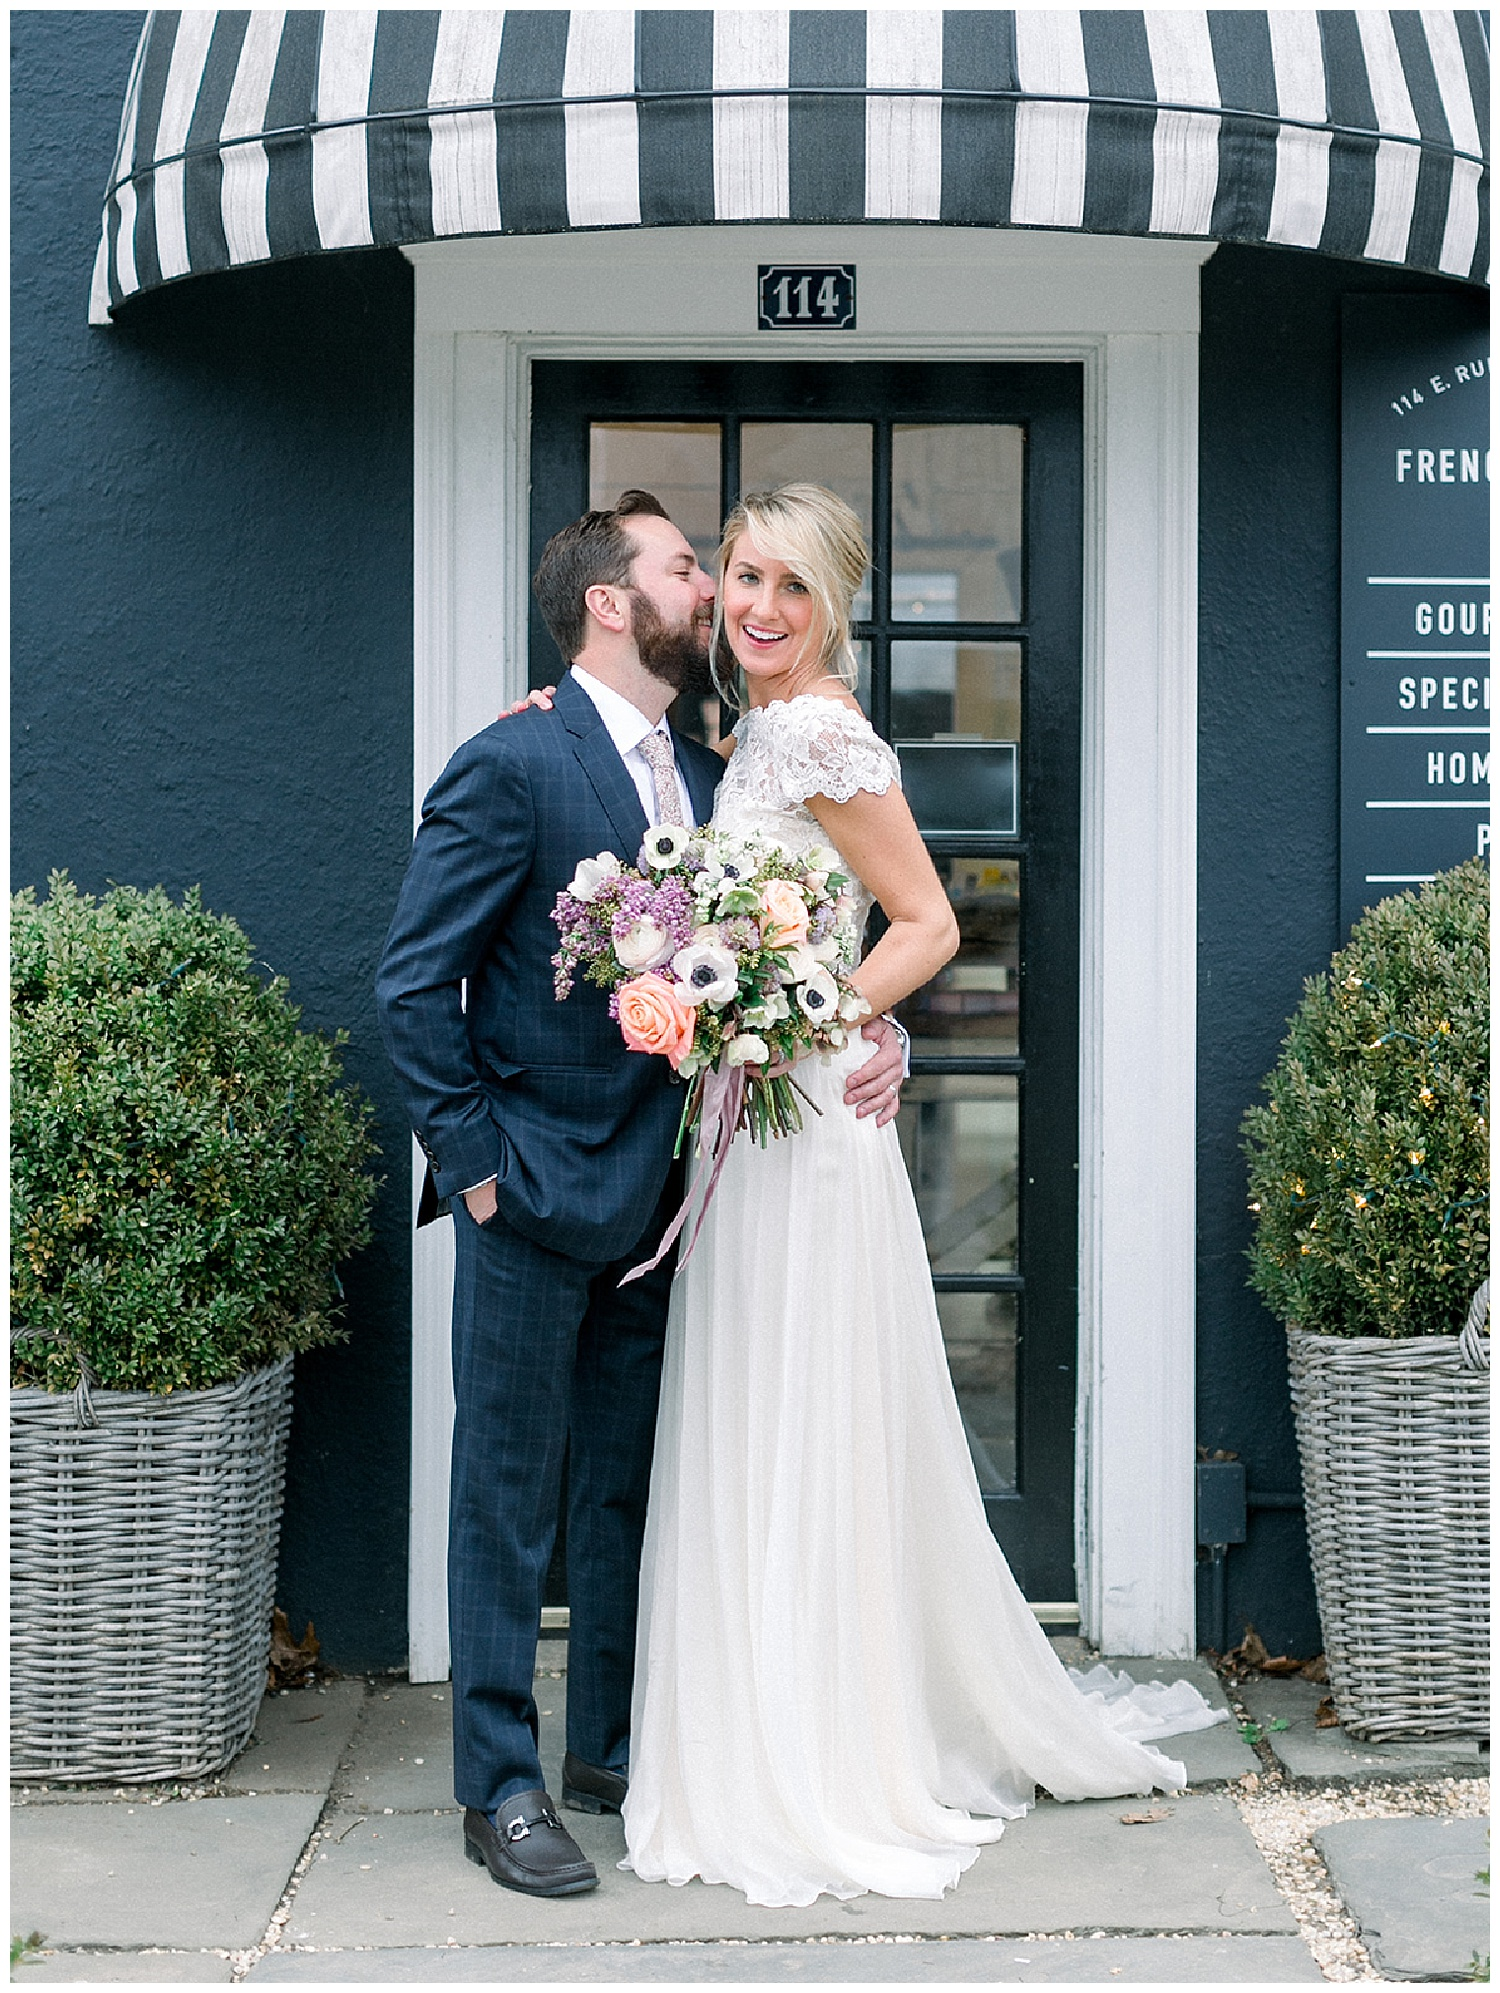 Intimate Engagement Celebration | The French Market | Rumson, NJ | www.redoakweddings.com